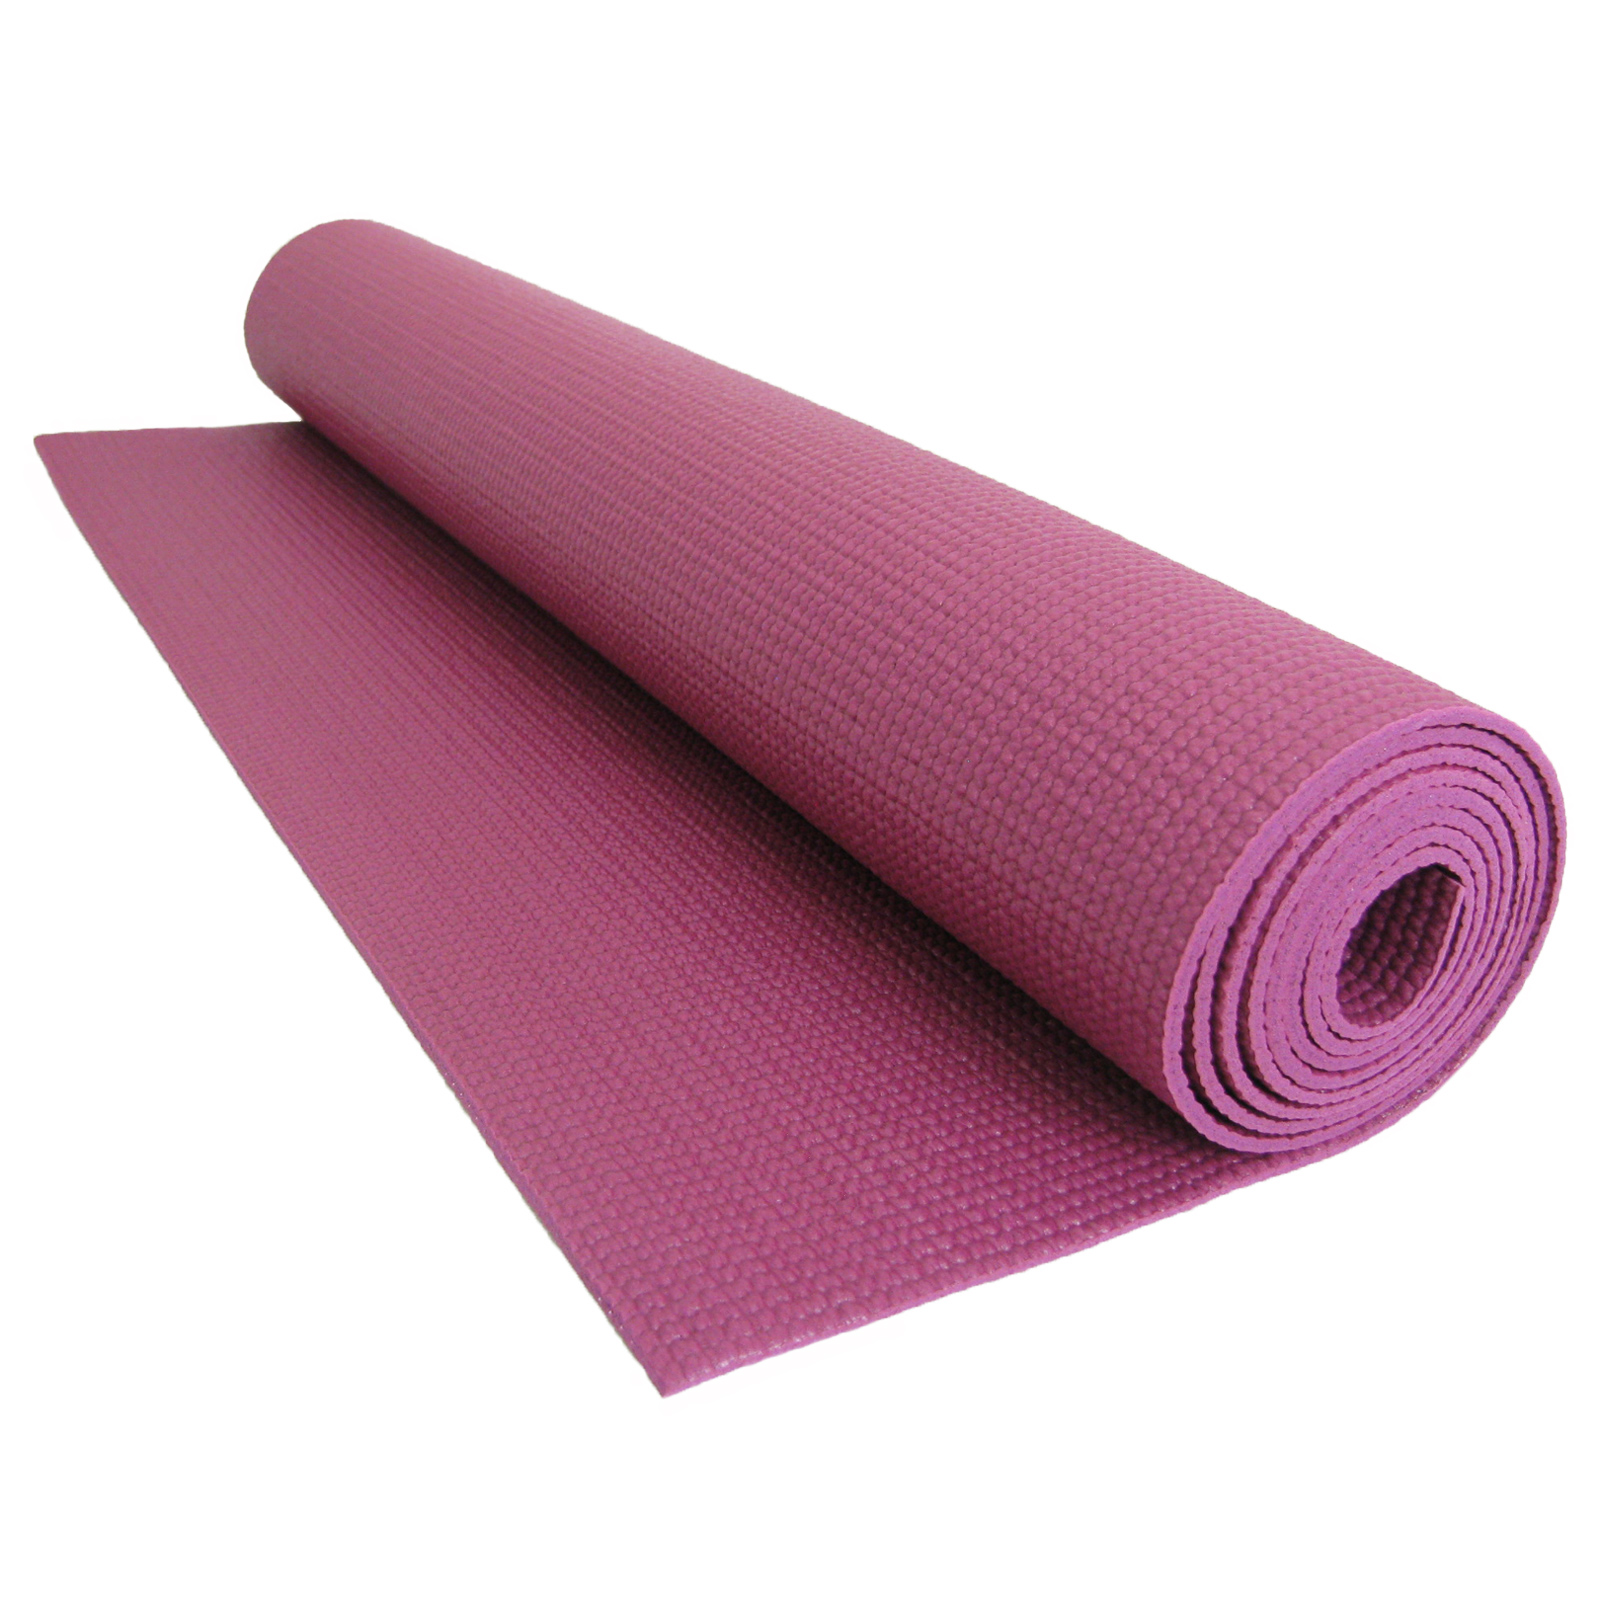 system pilates body thick with daway non tpe exercise workout resistant wide carrying hot slip mats friendly strap eco pin tear yoga mat alignment